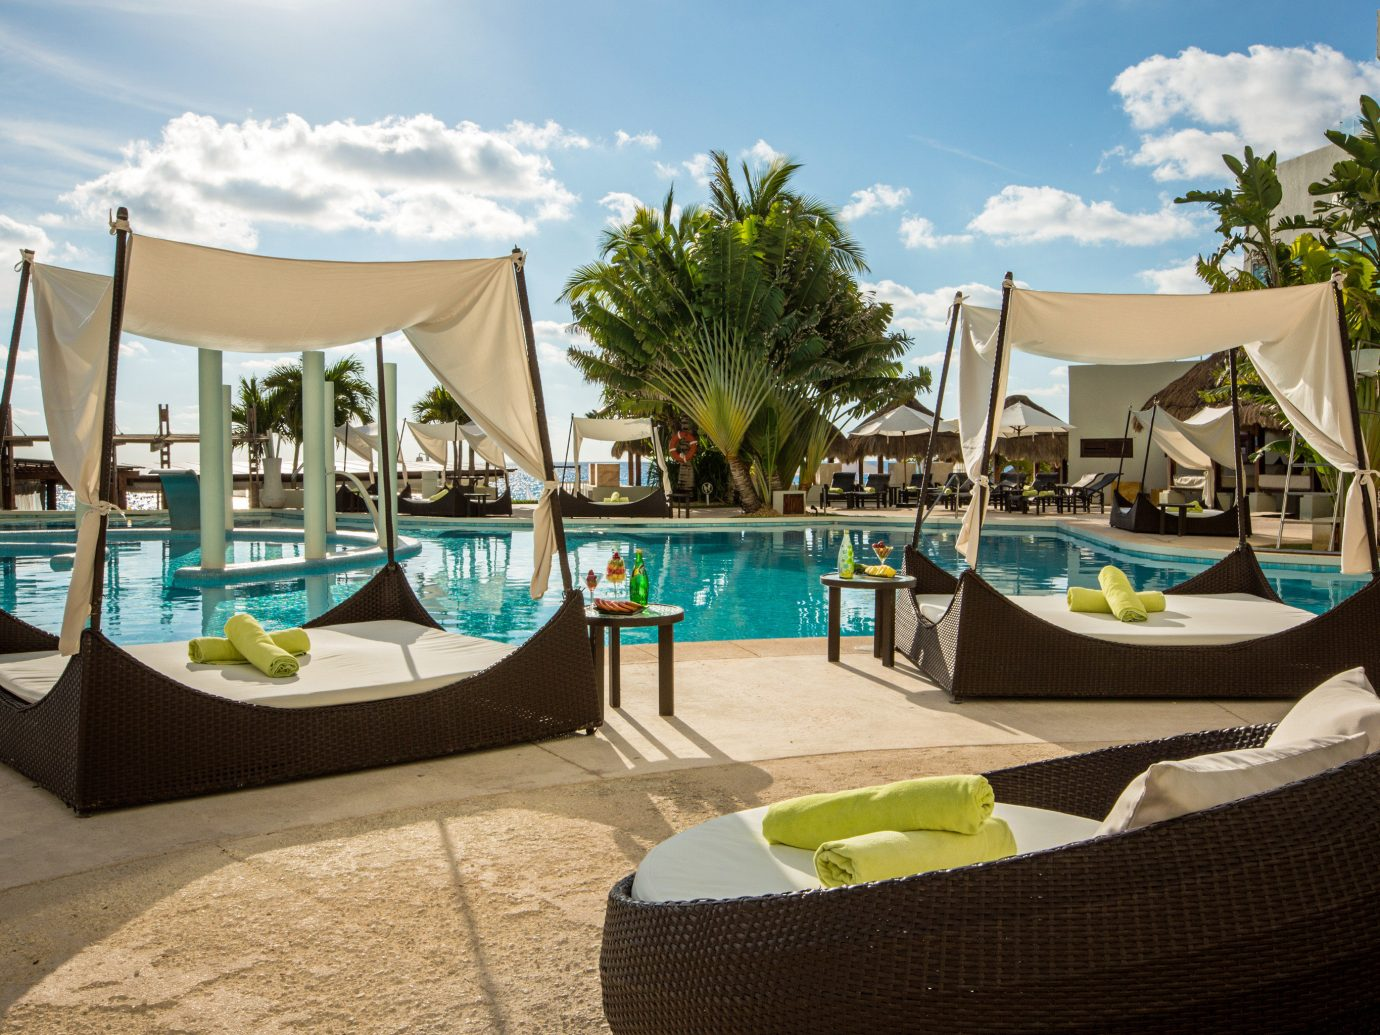 The 7 BEST Caribbean AllInclusive Resorts for Singles